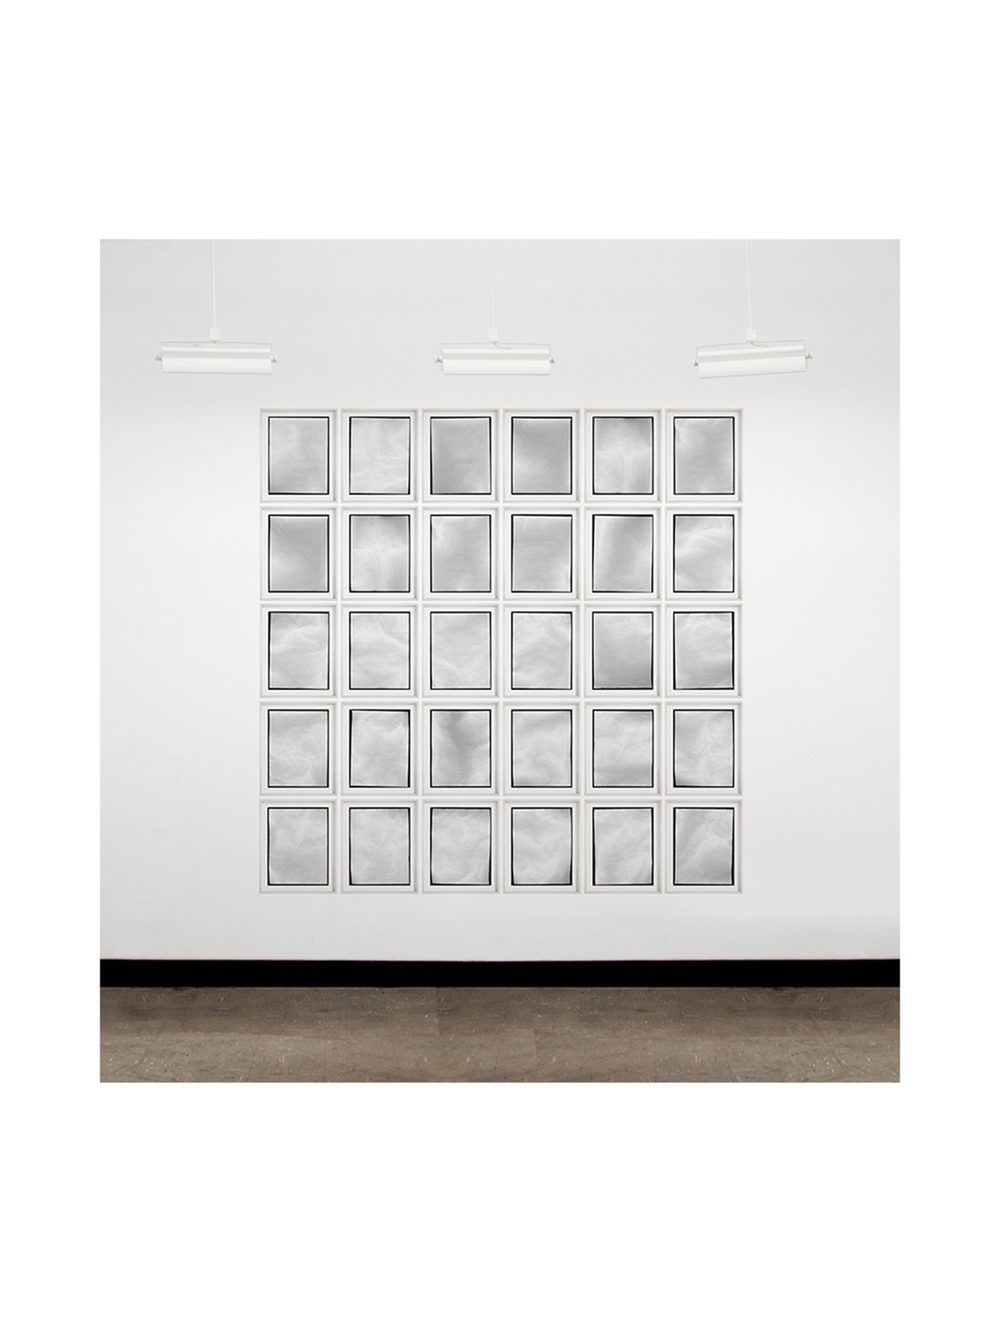 Paper_Installation_framed_cropped_size to match framed images_at300dpi.jpg